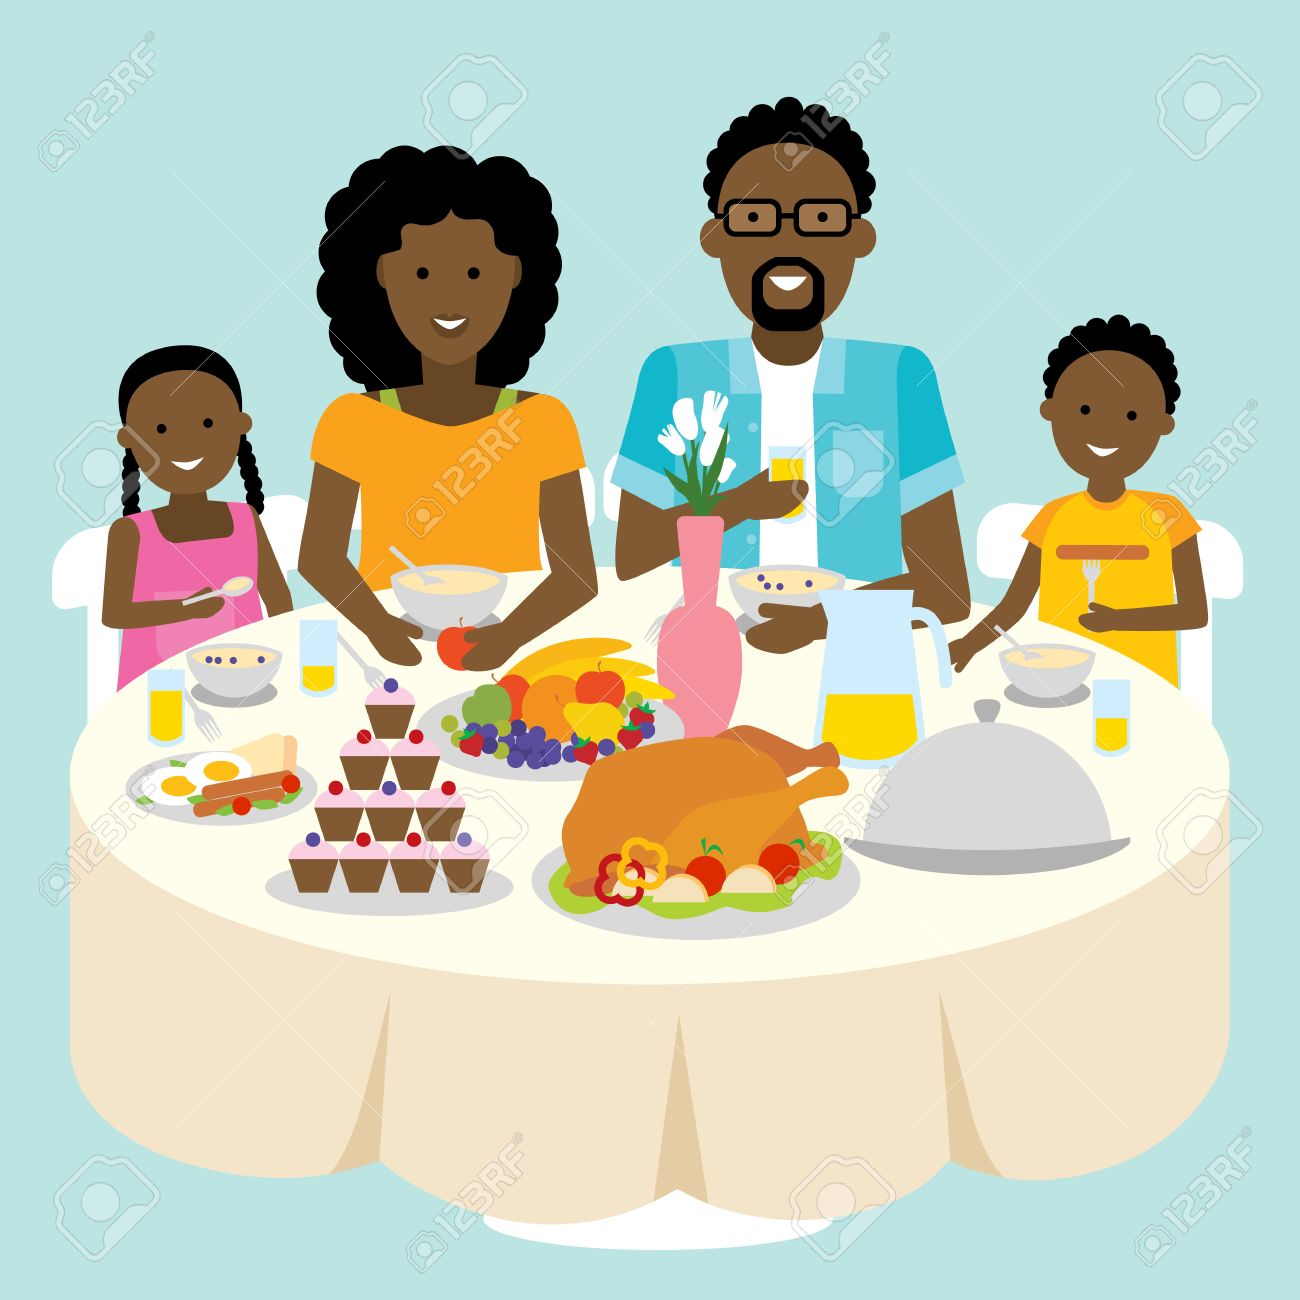 Free Family Black Cliparts, Download Free Clip Art, Free Clip Art on Clipart  Library